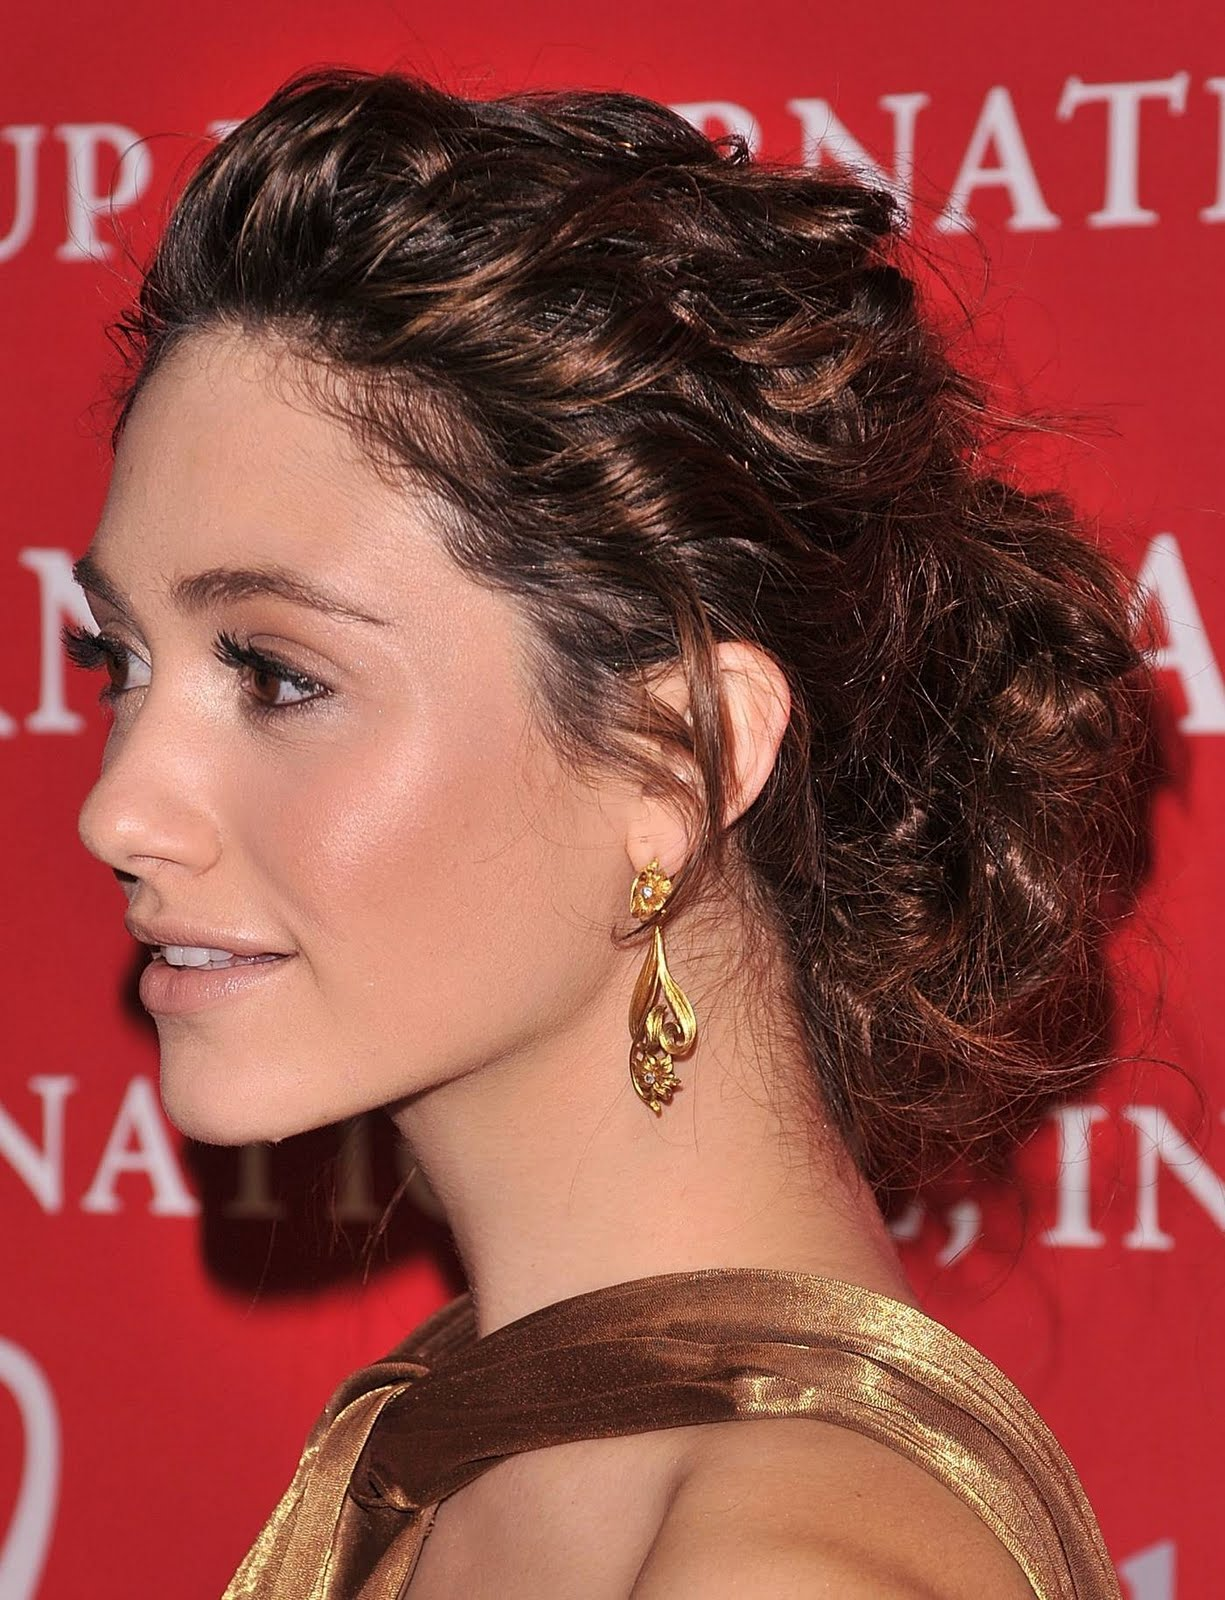 pdo hairstyle hairstyles-8